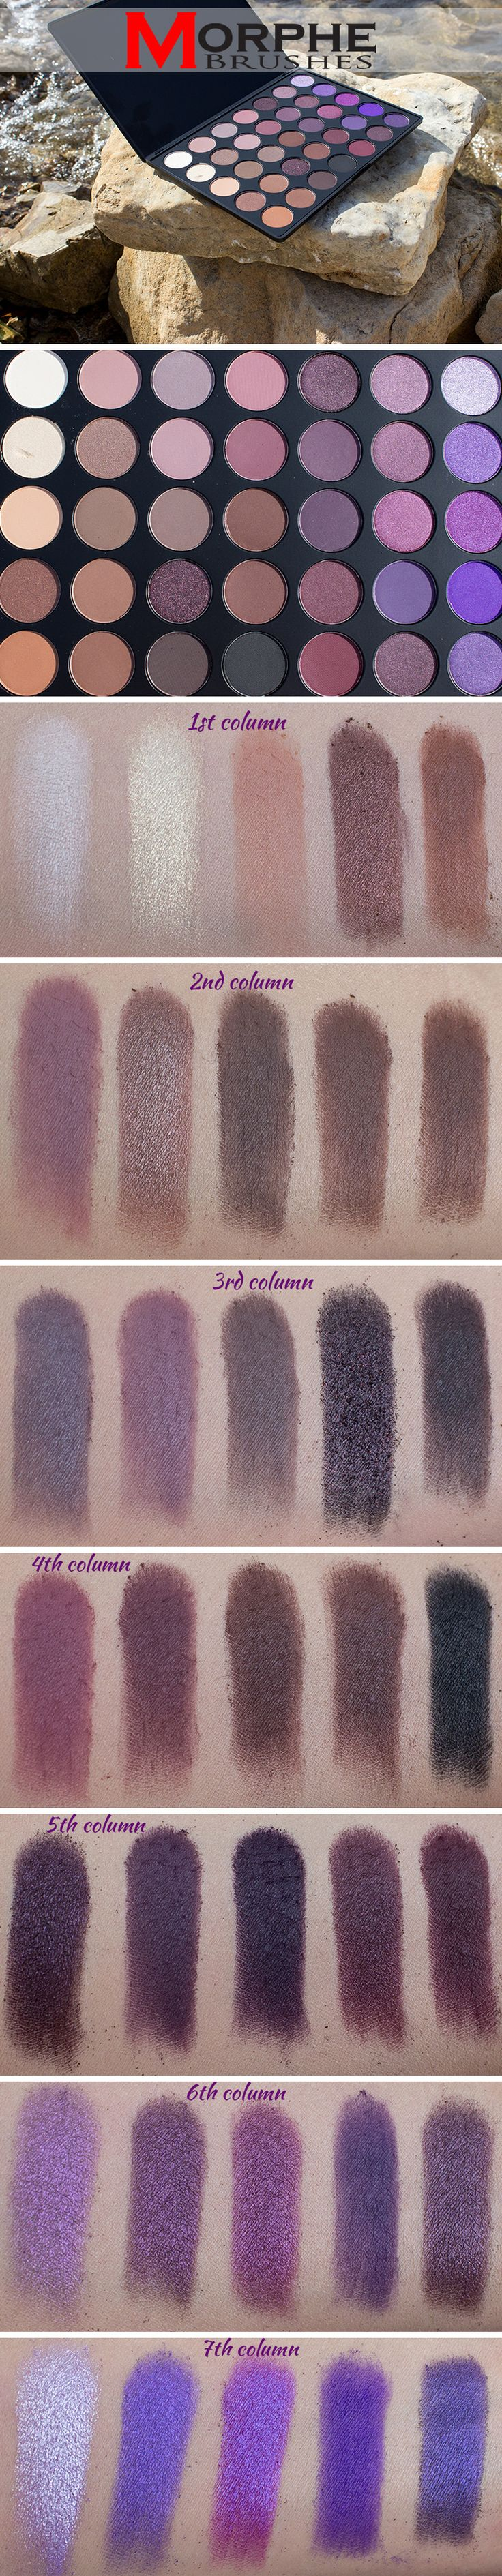 review swatches Morphe Brushes 35P Eyeshadow Palette